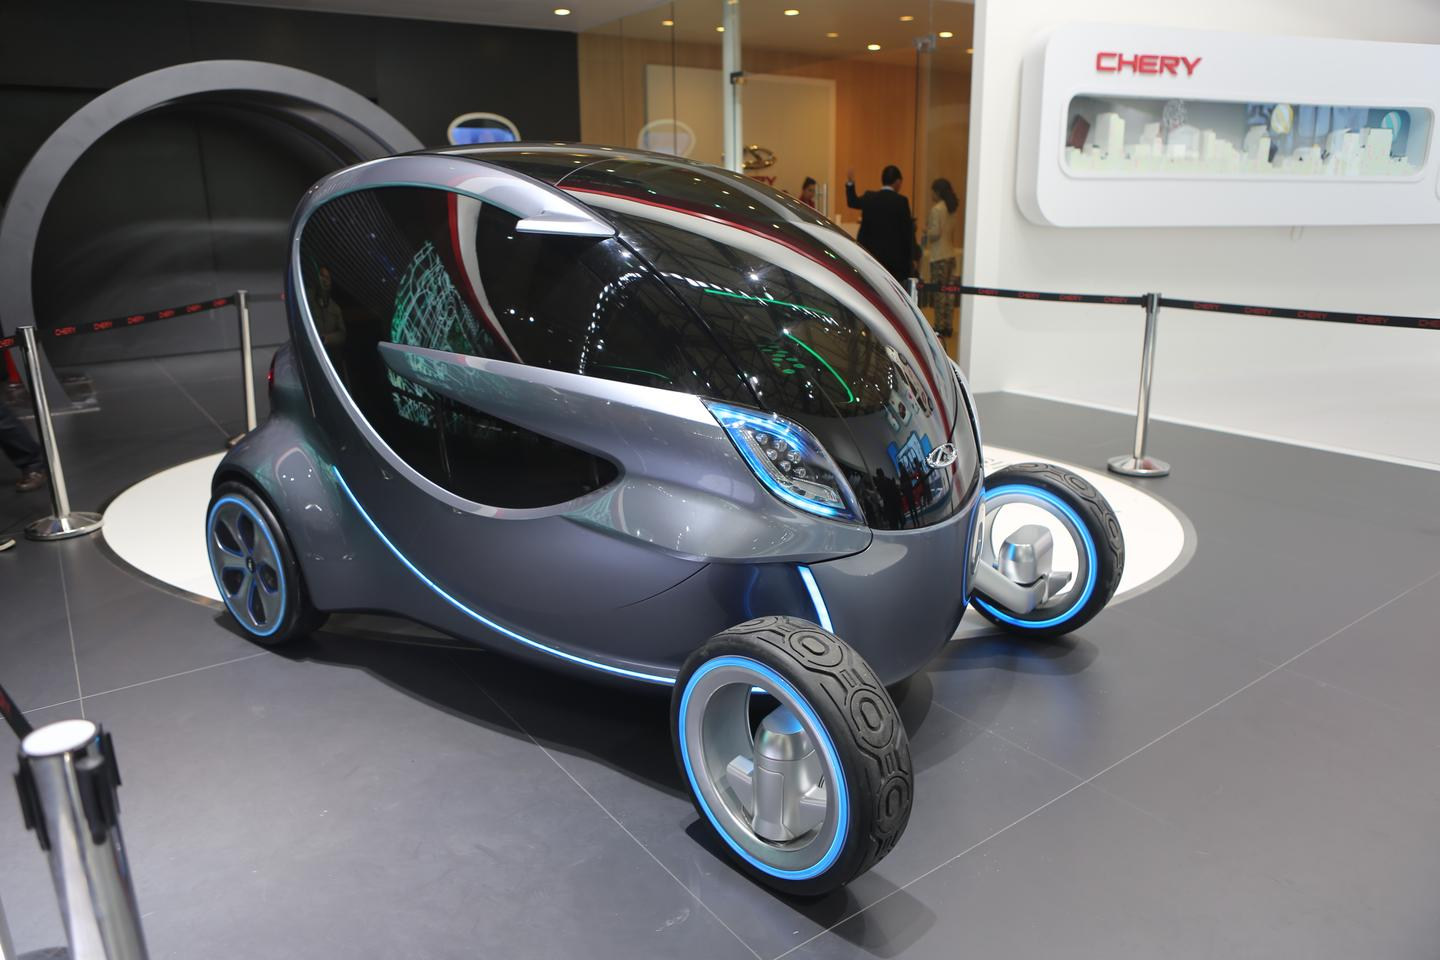 The Chery Ant 2.0 (Photo: Gizmag)